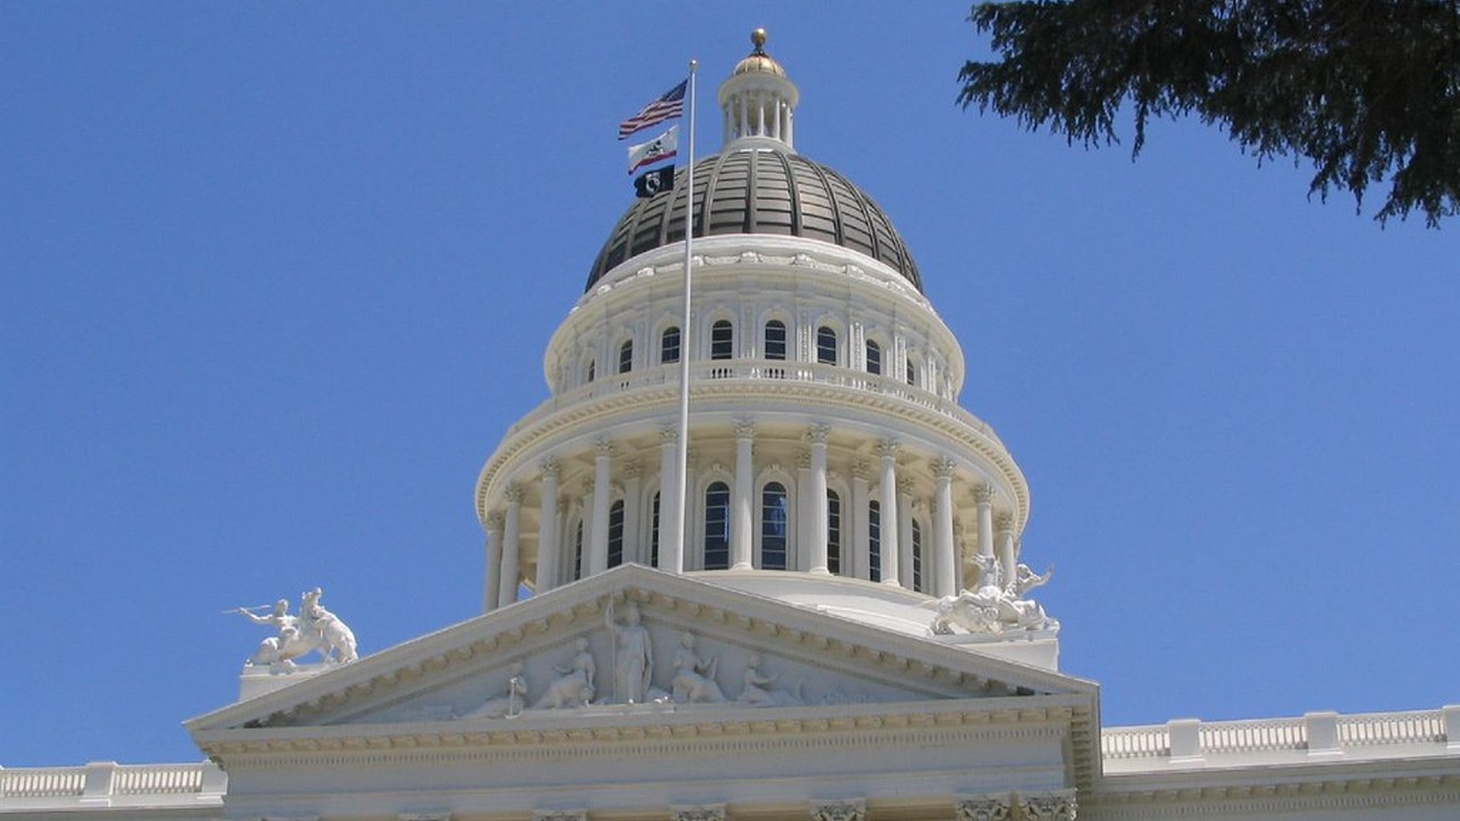 The California State Capitol in Sacramento. This week, Governor Gavin Newsom signed a bill that establishes a task force to research the history of slavery in the state and to develop a proposal for possible reparations for the descendents of enslaved people and those affected by slavery.